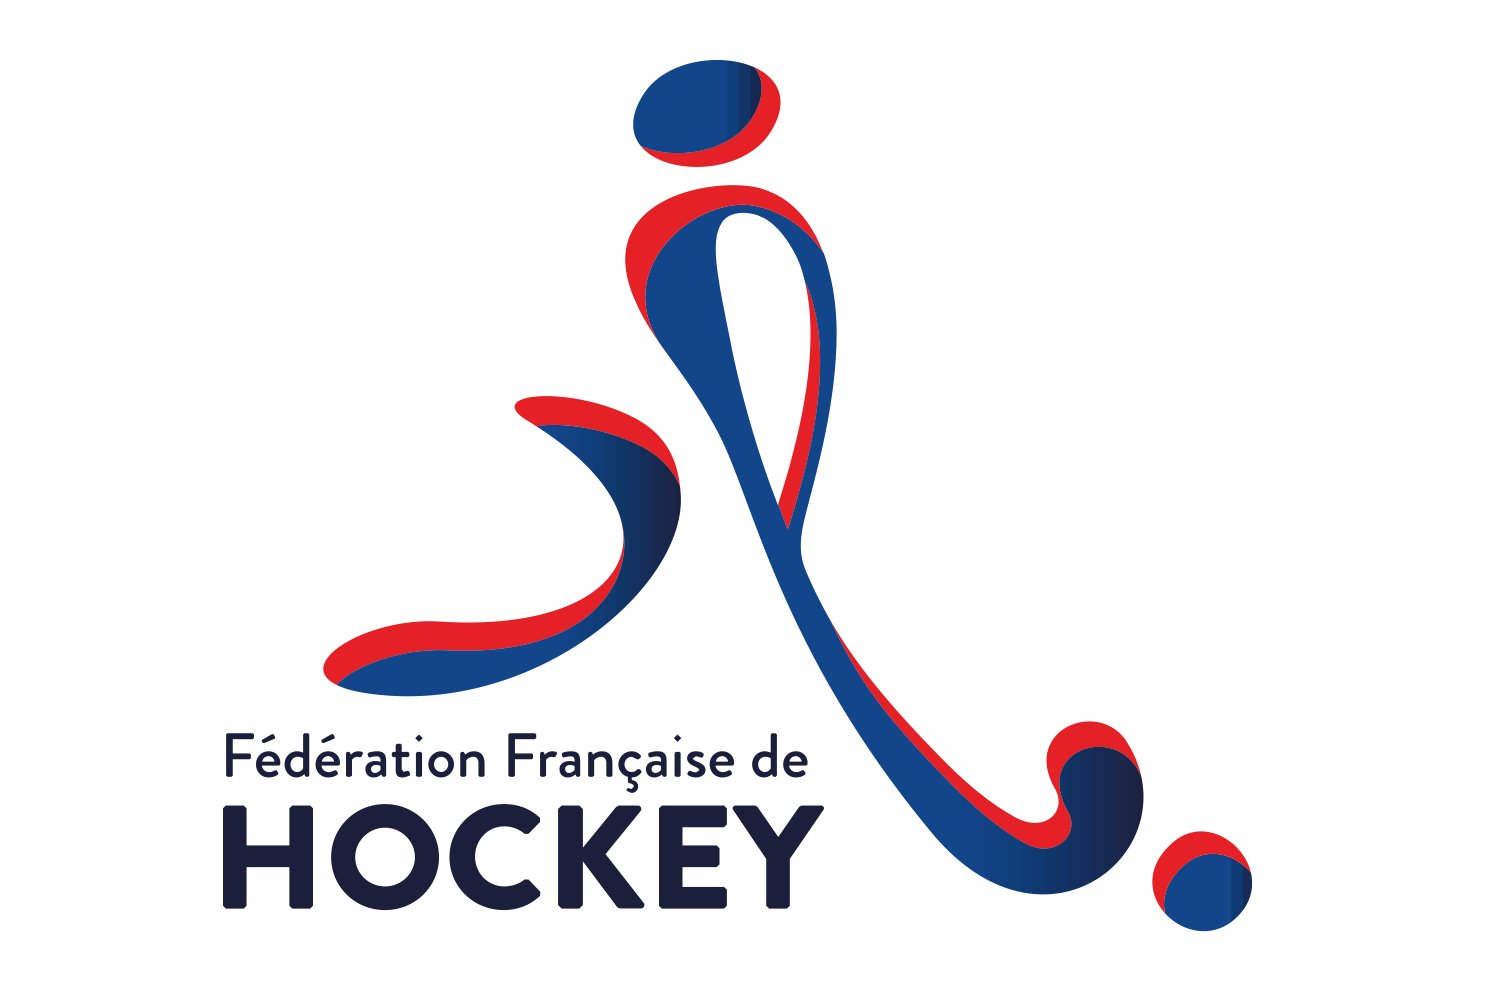 federation-francaise-de-hockey-logo